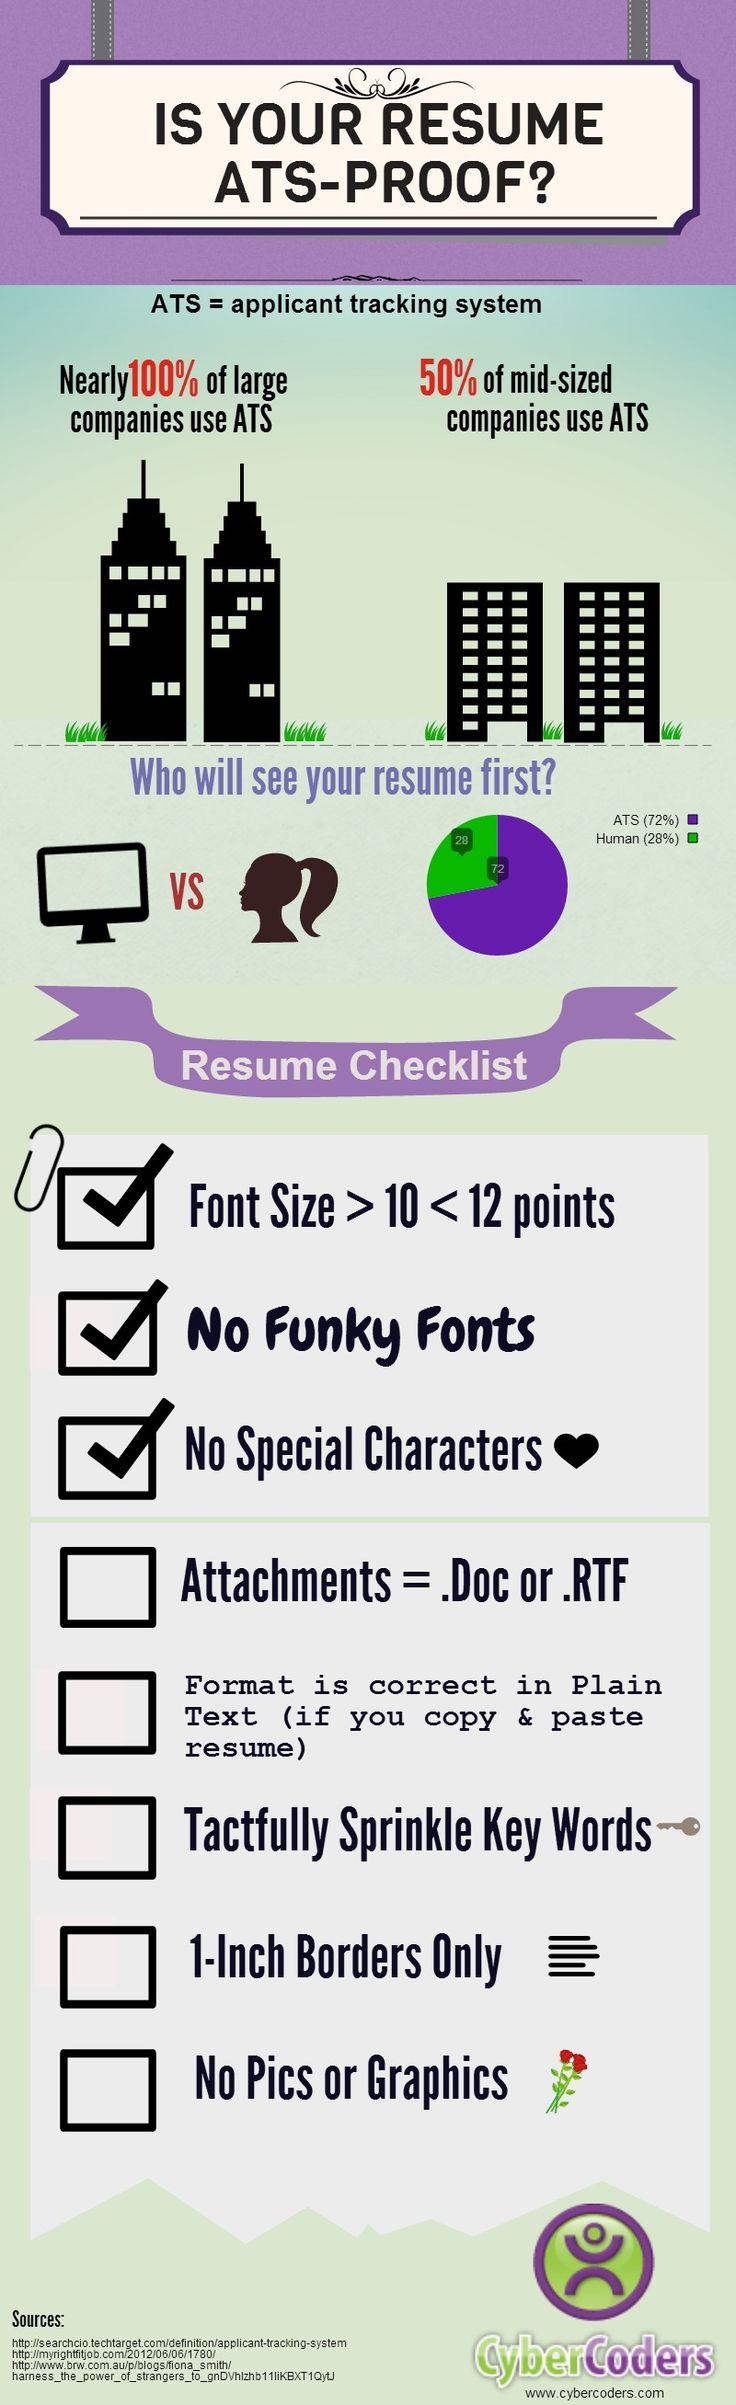 Need help w/ your resume? Would you use this resume business?